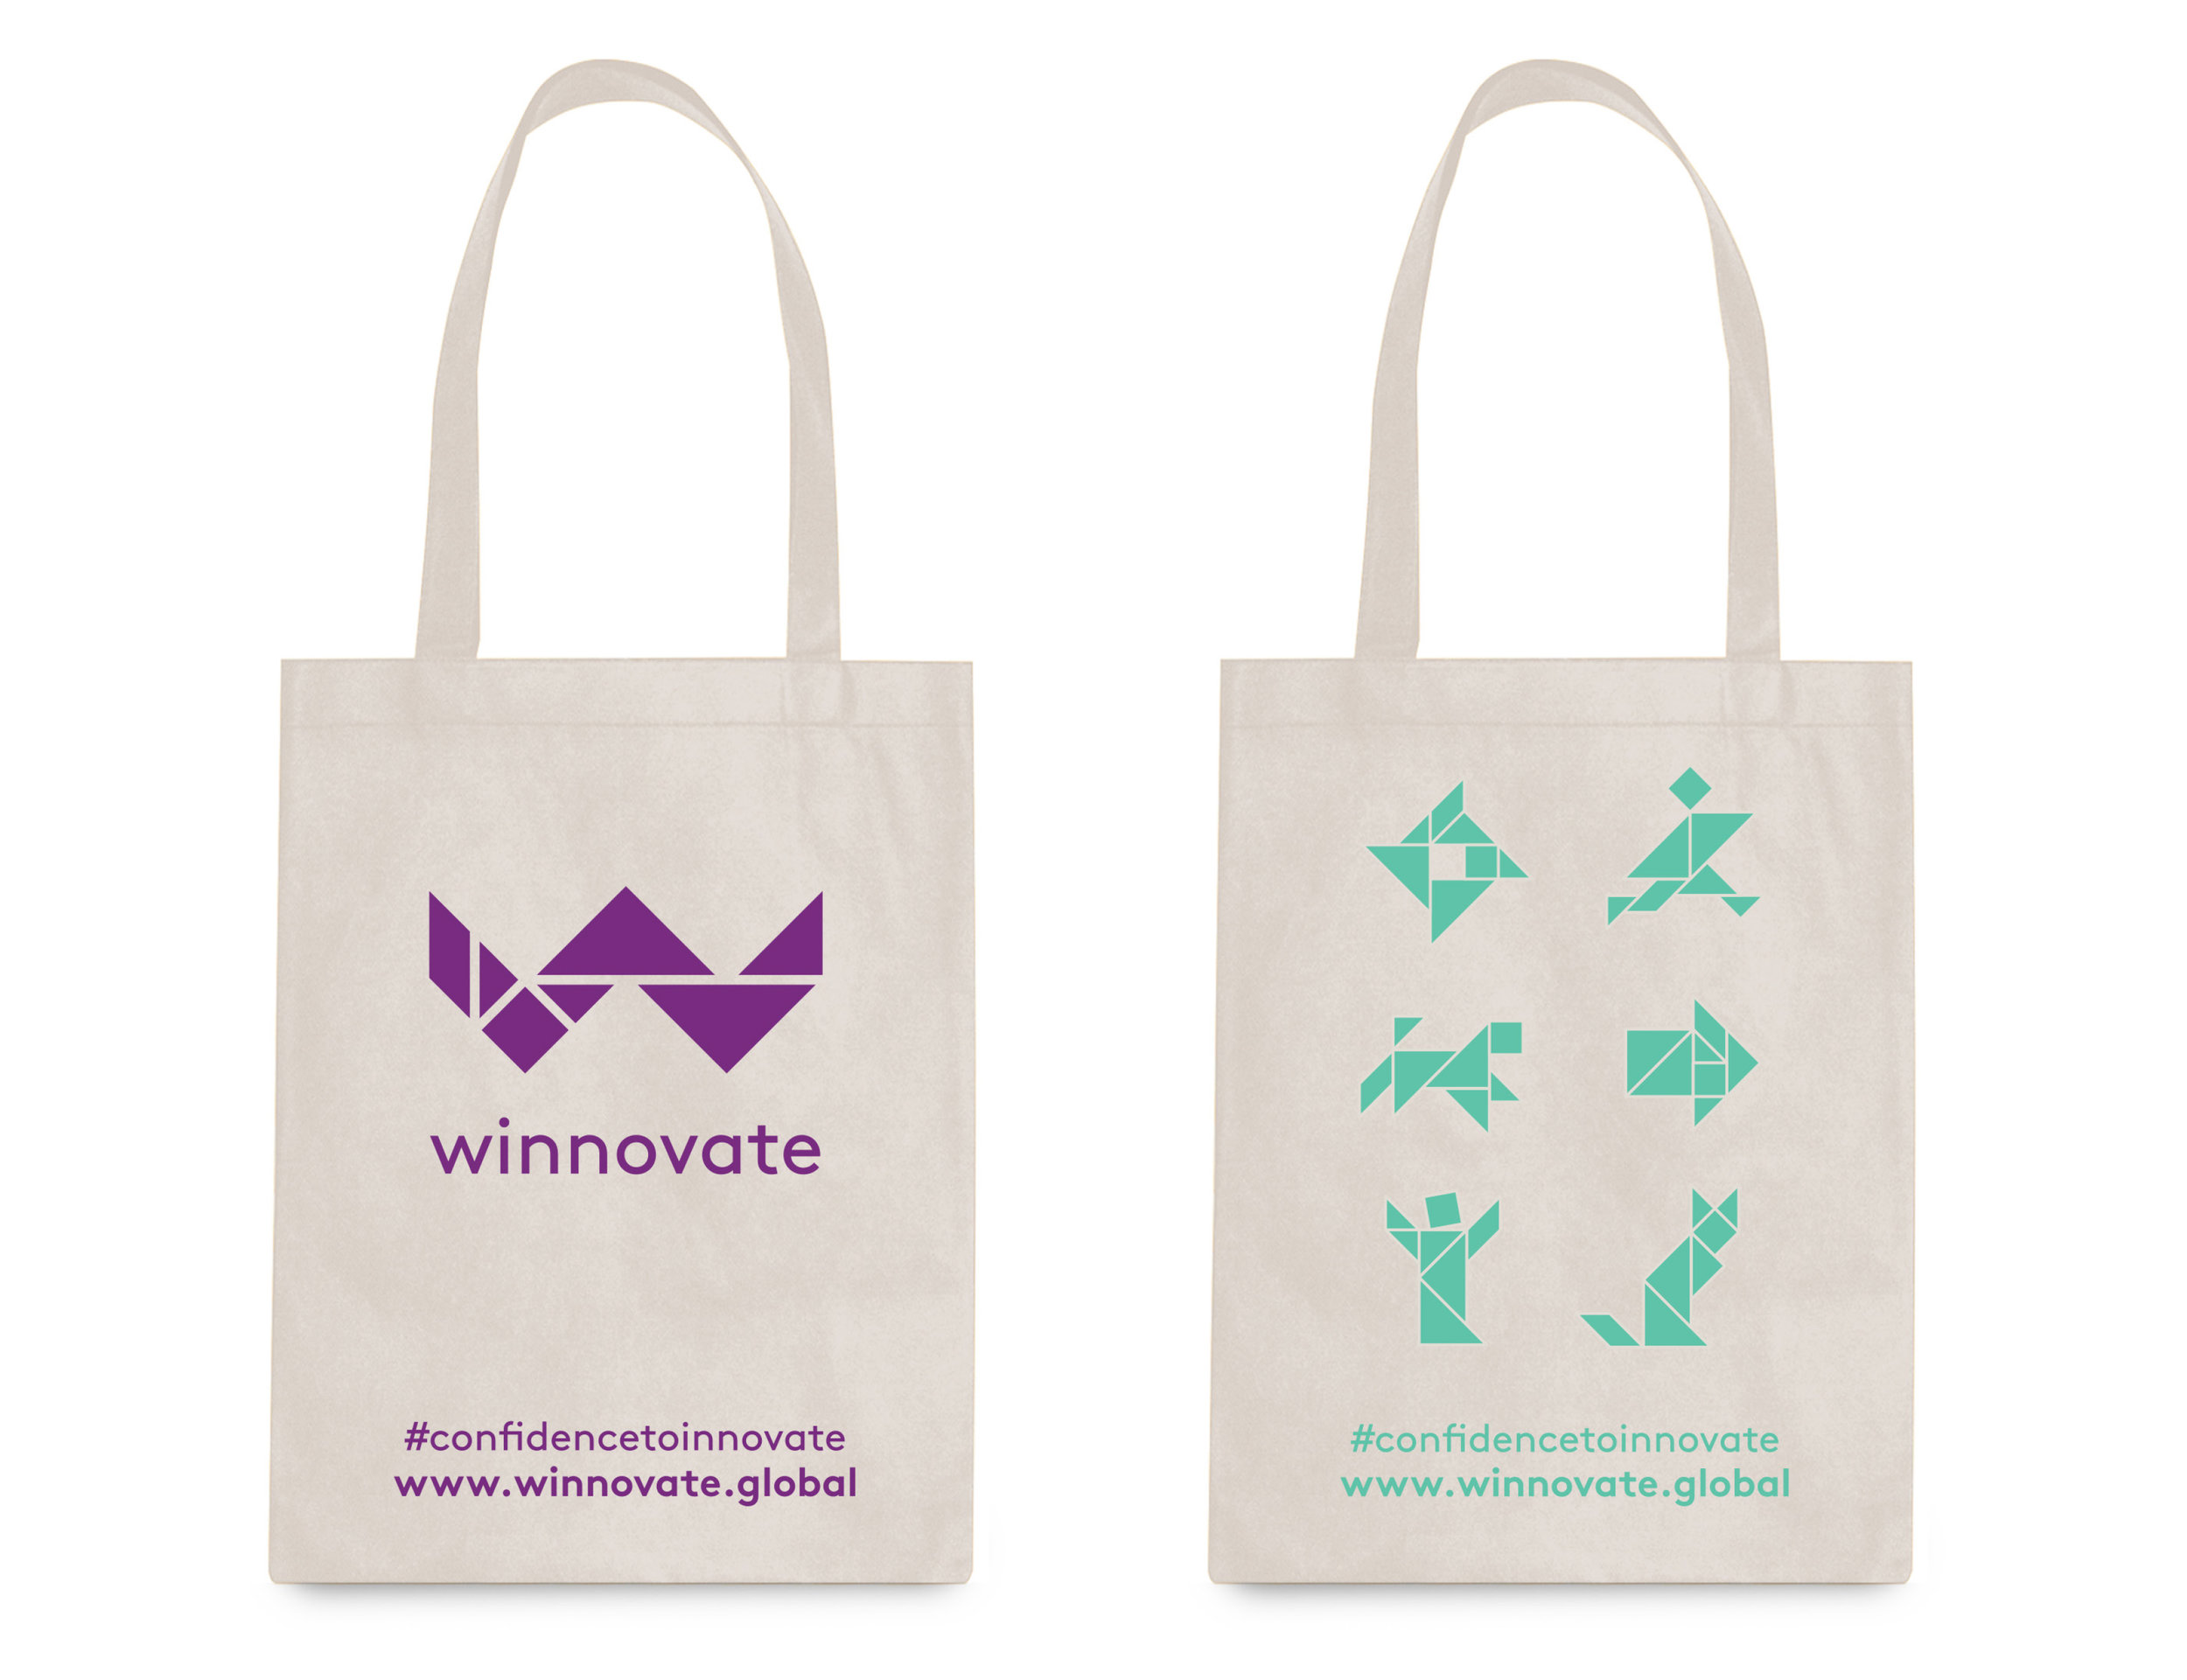 Kalian_Branding_Winnovate_Bag.jpg